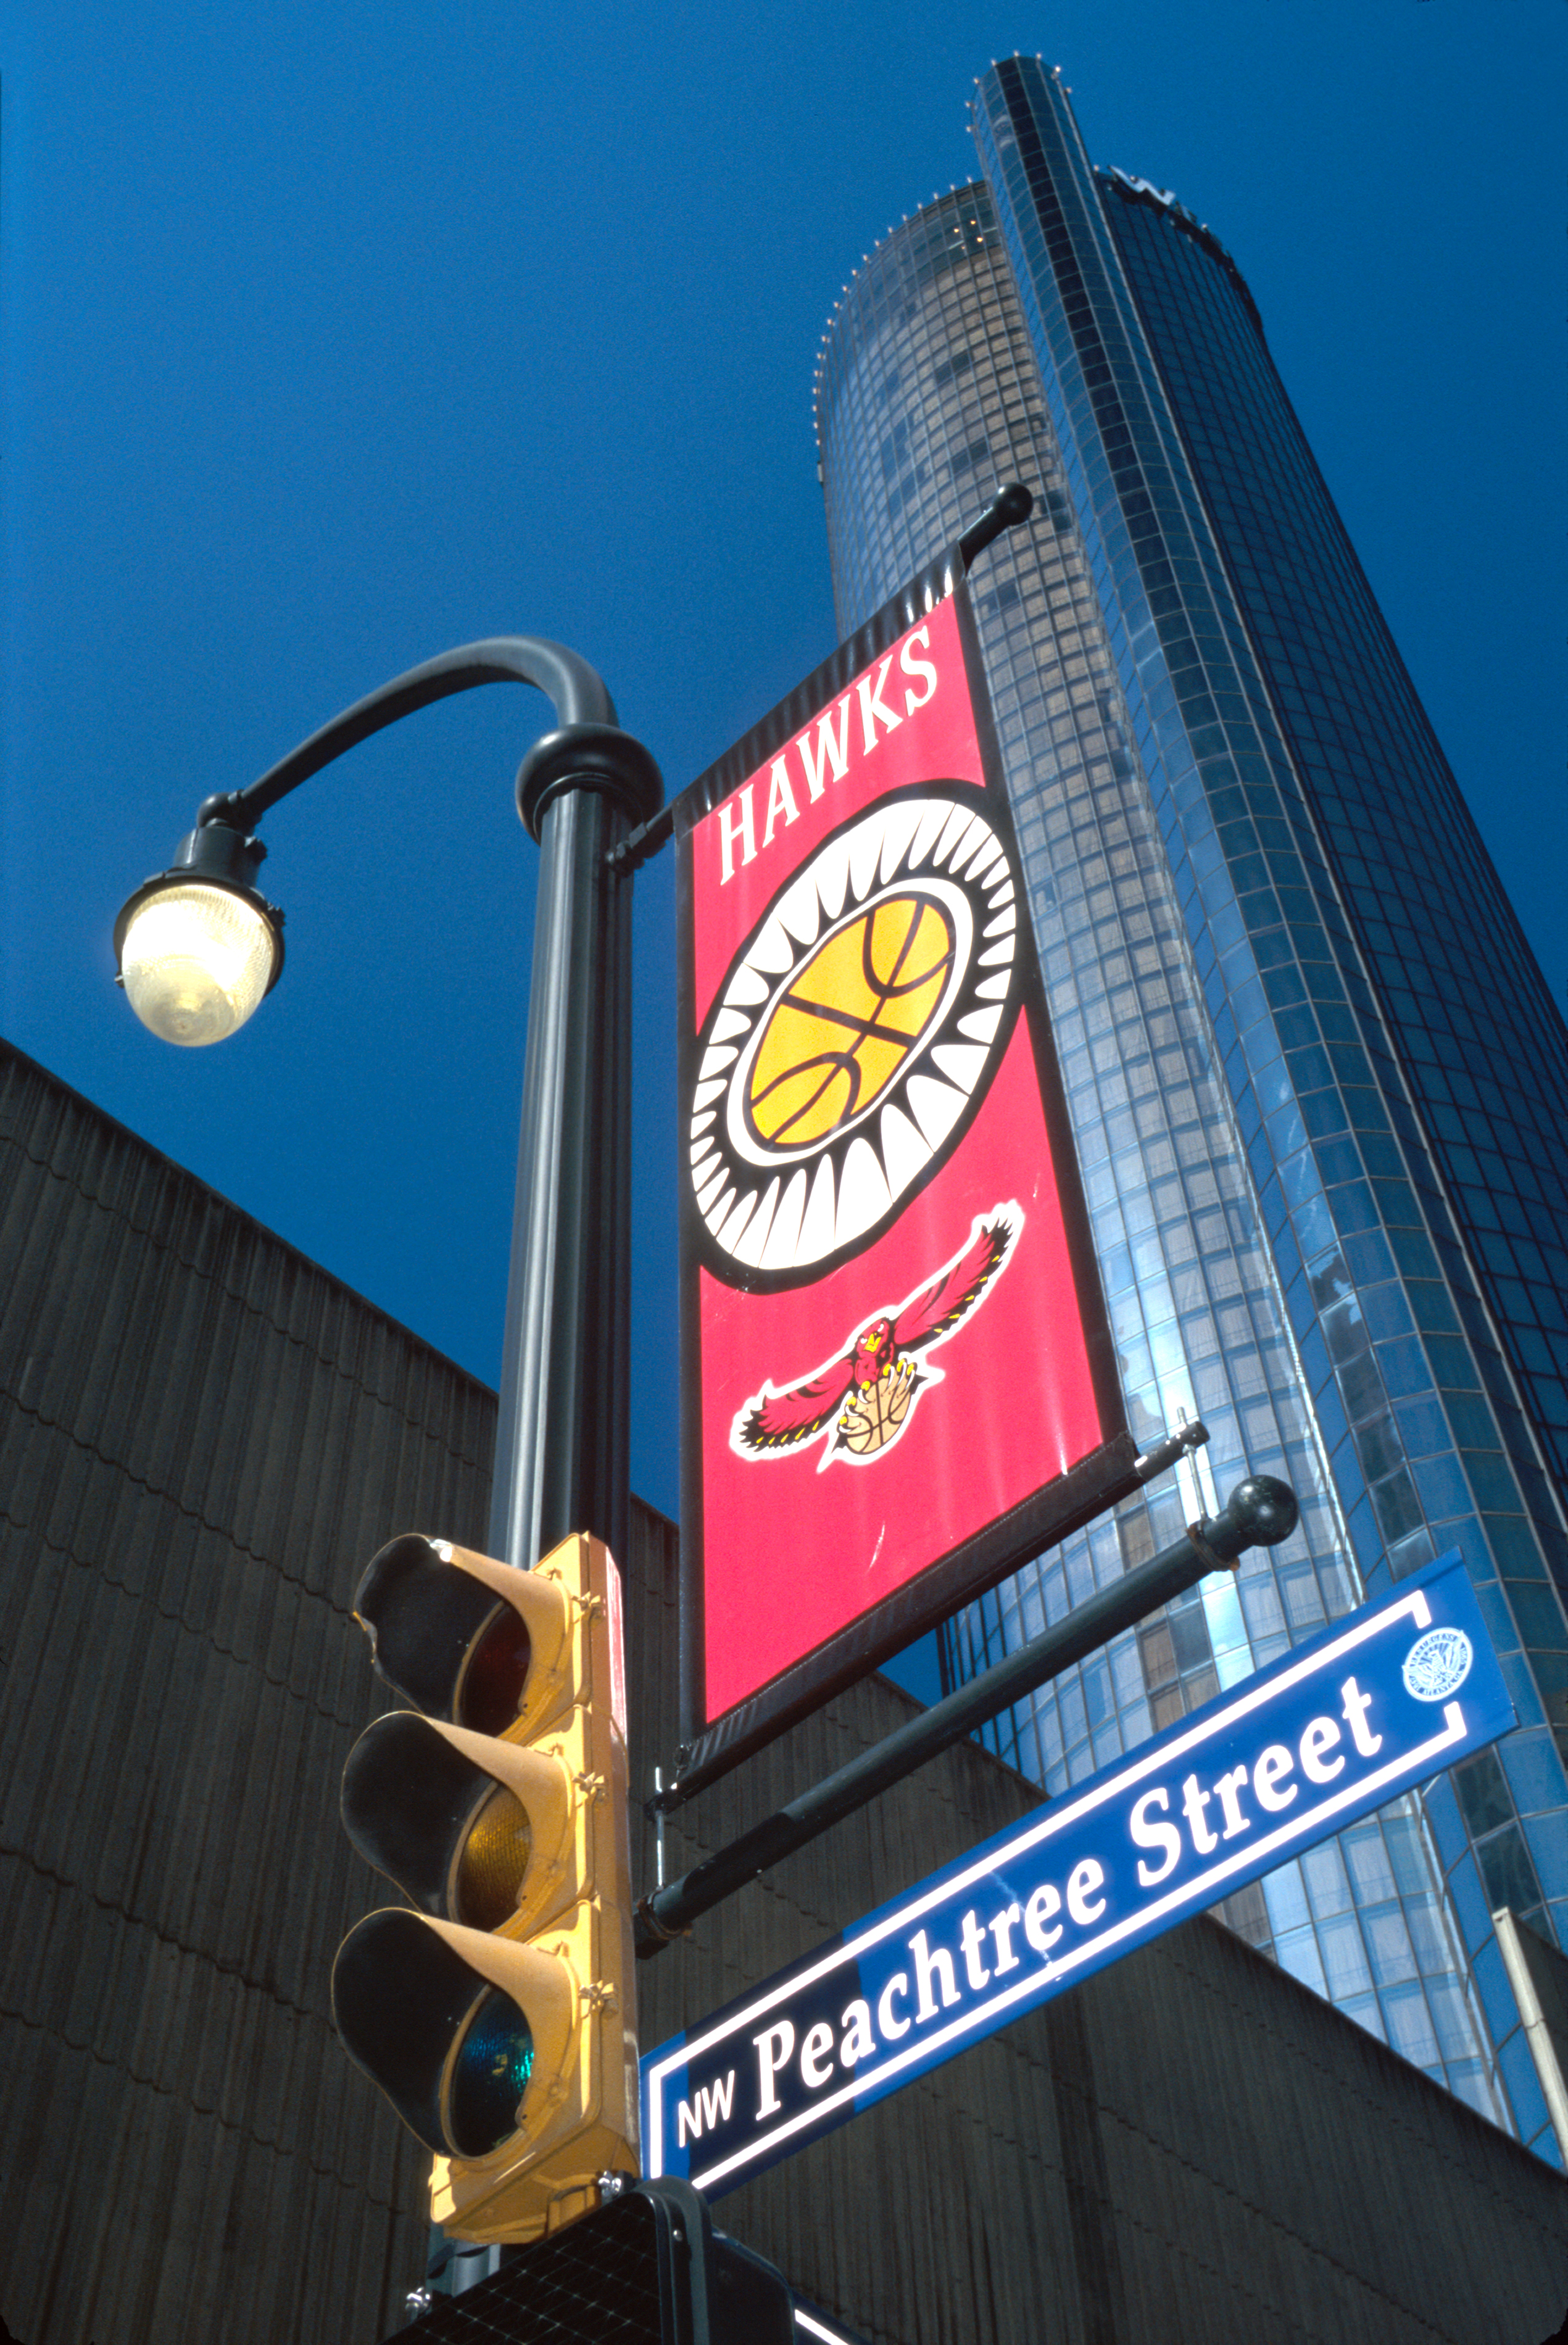 Peachtree Street sign and banner for Hawks National Basketball Association team.